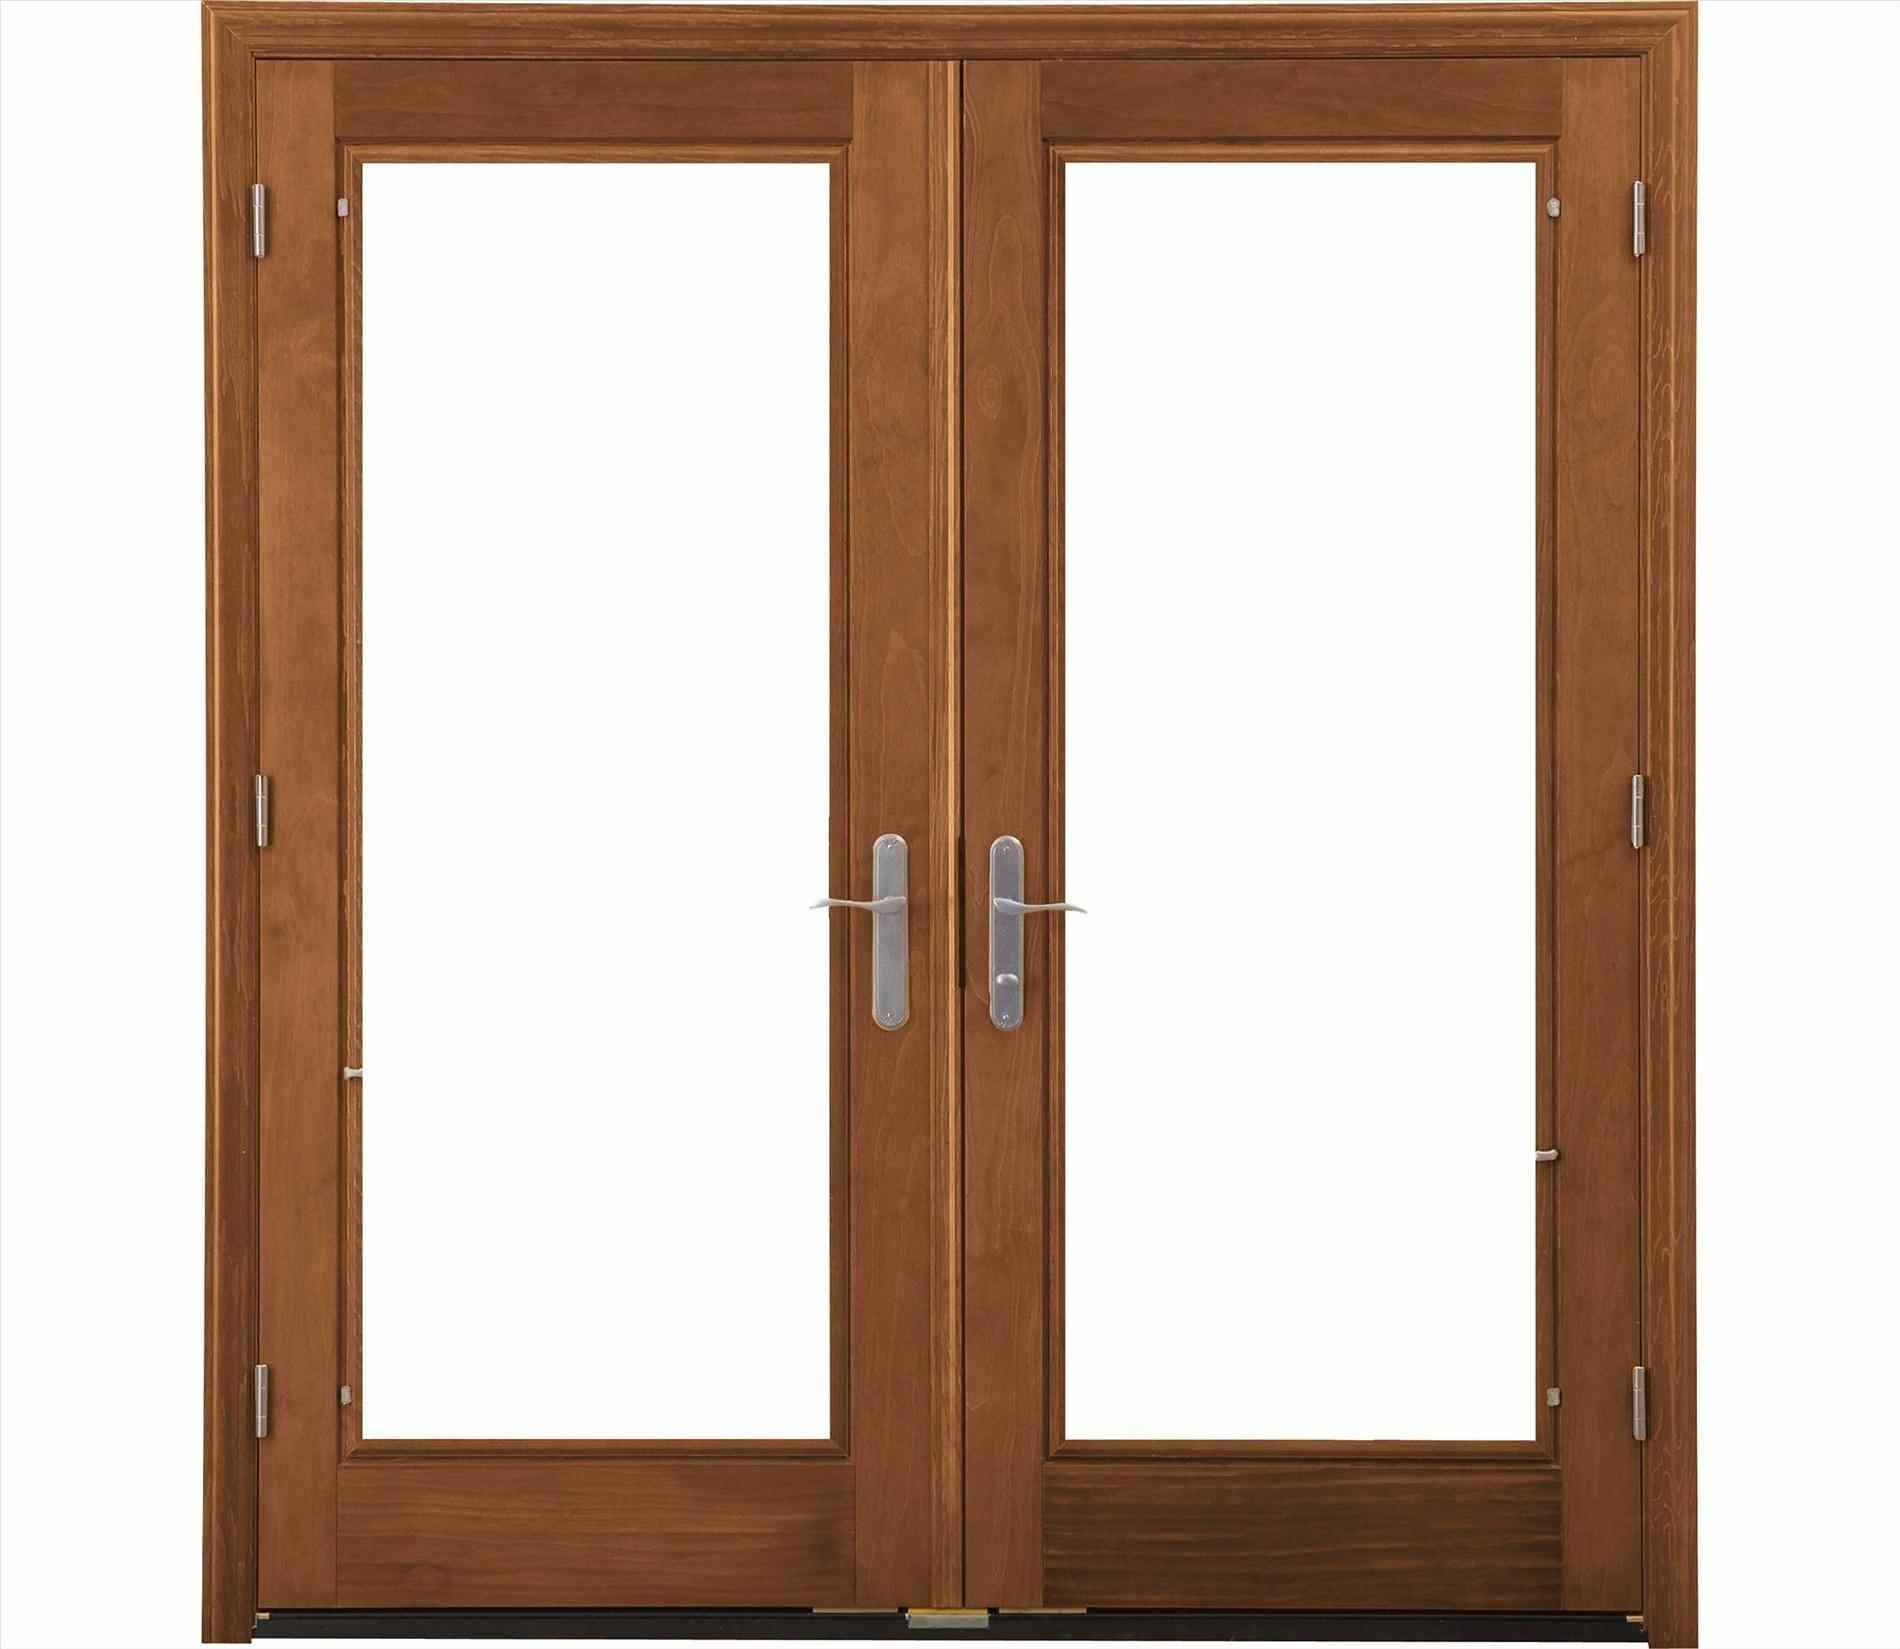 Steel Entry Door Lowes | Lowes Interior Doors | Doors at Lowes